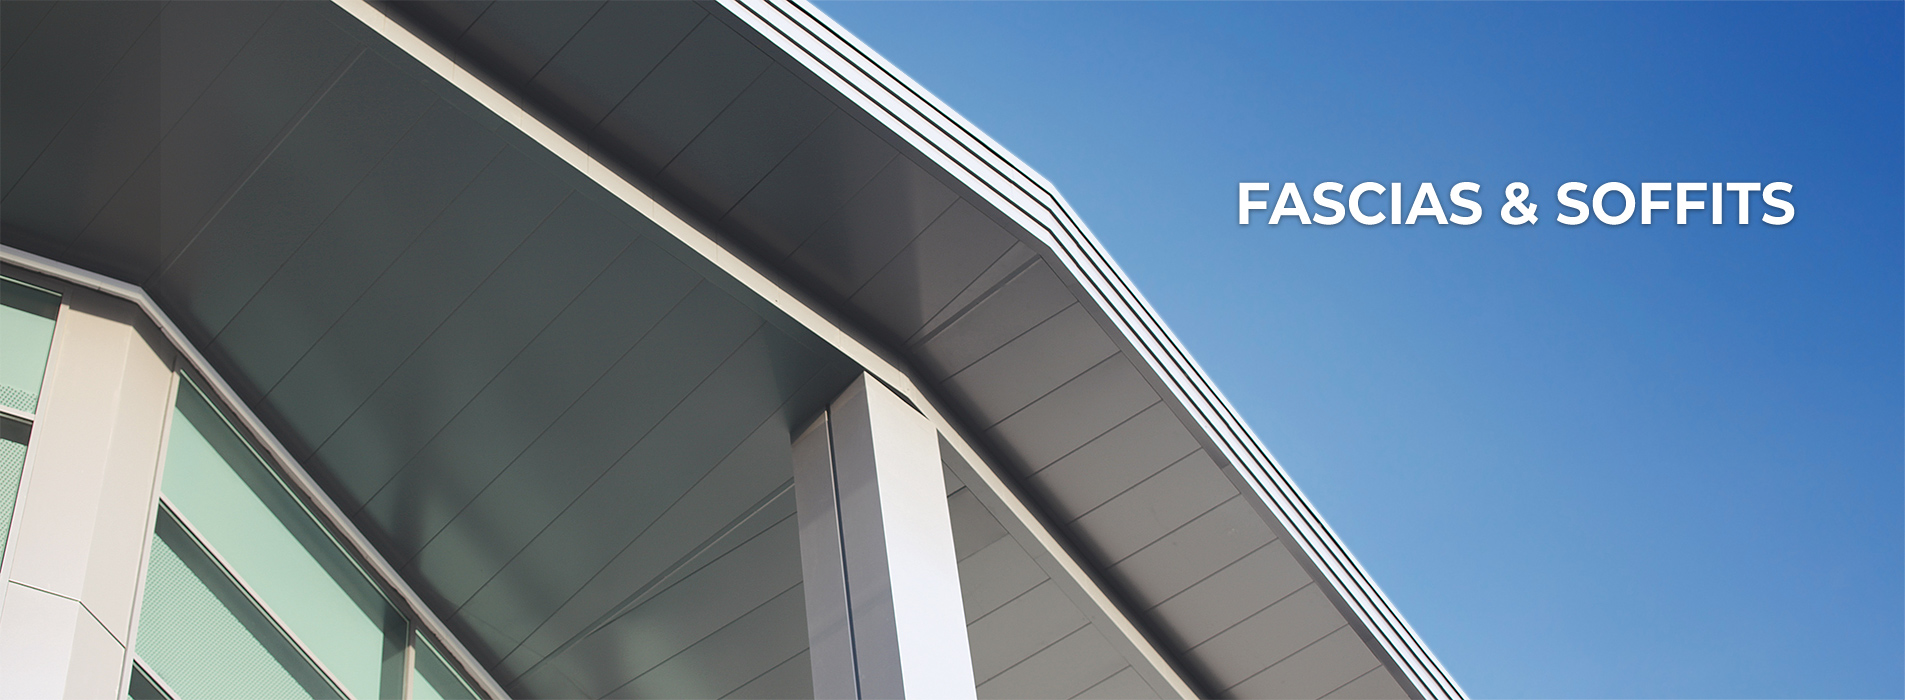 Fascias and Soffits Hammersmith Academy